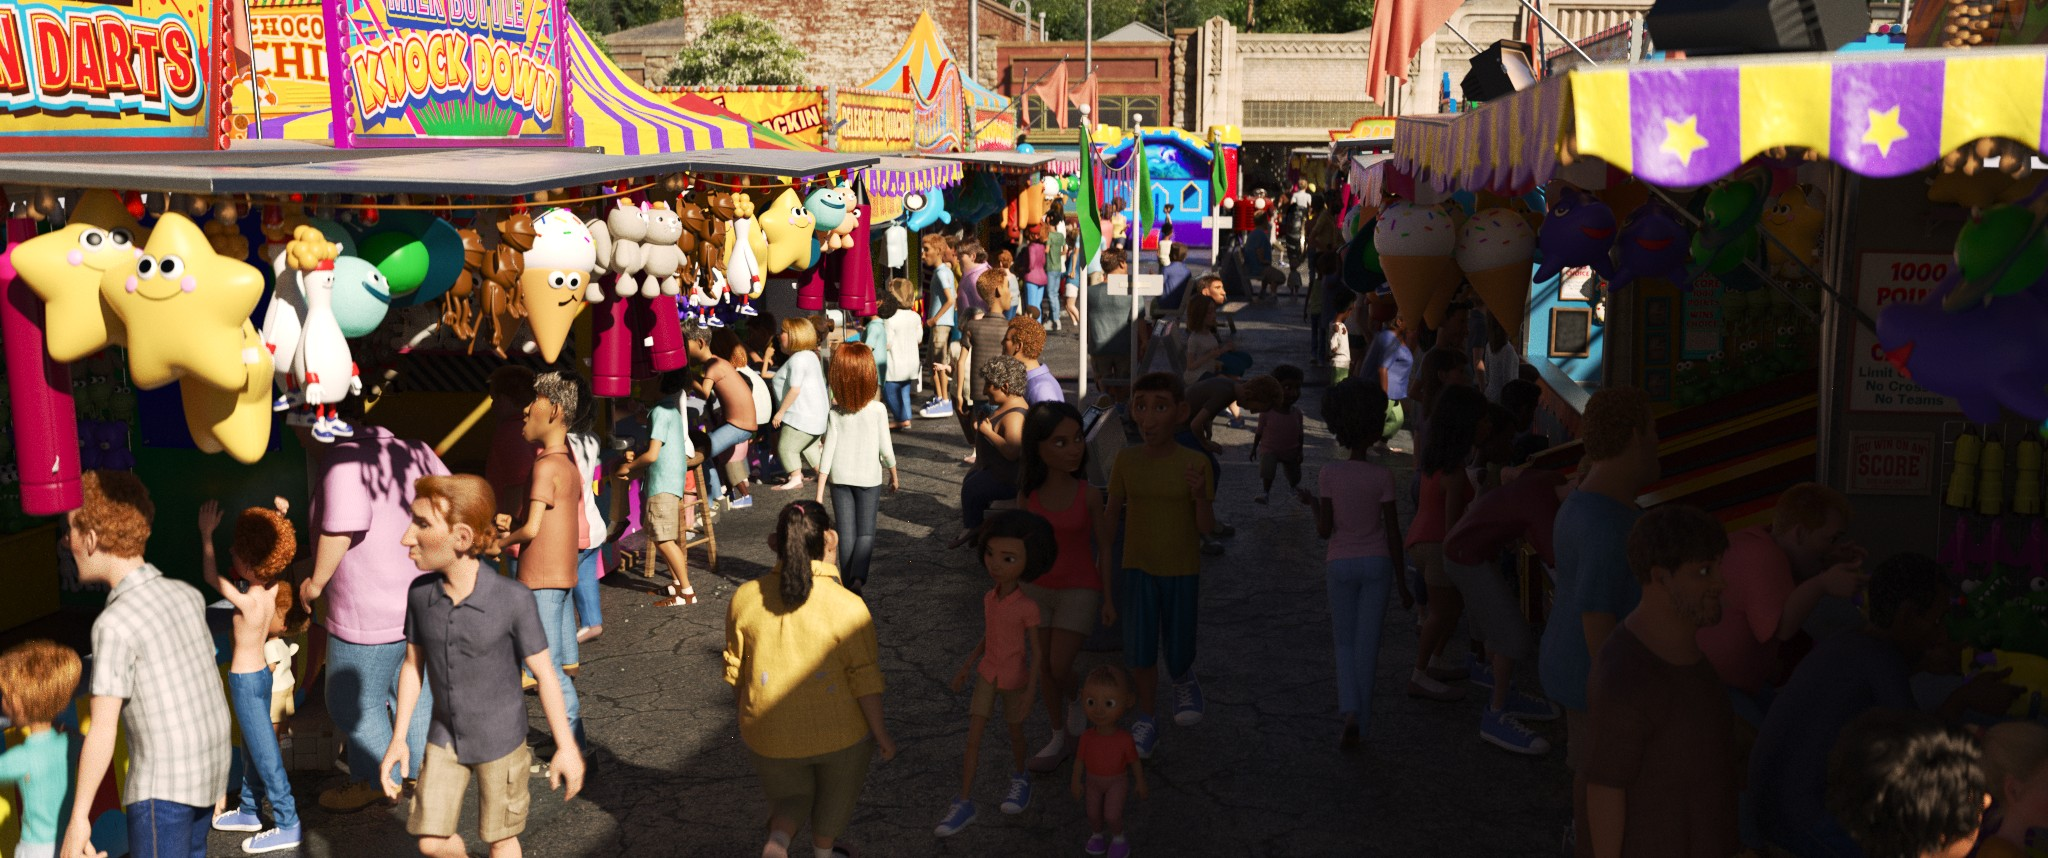 CGI scene of people enjoying a carnival in the daytime